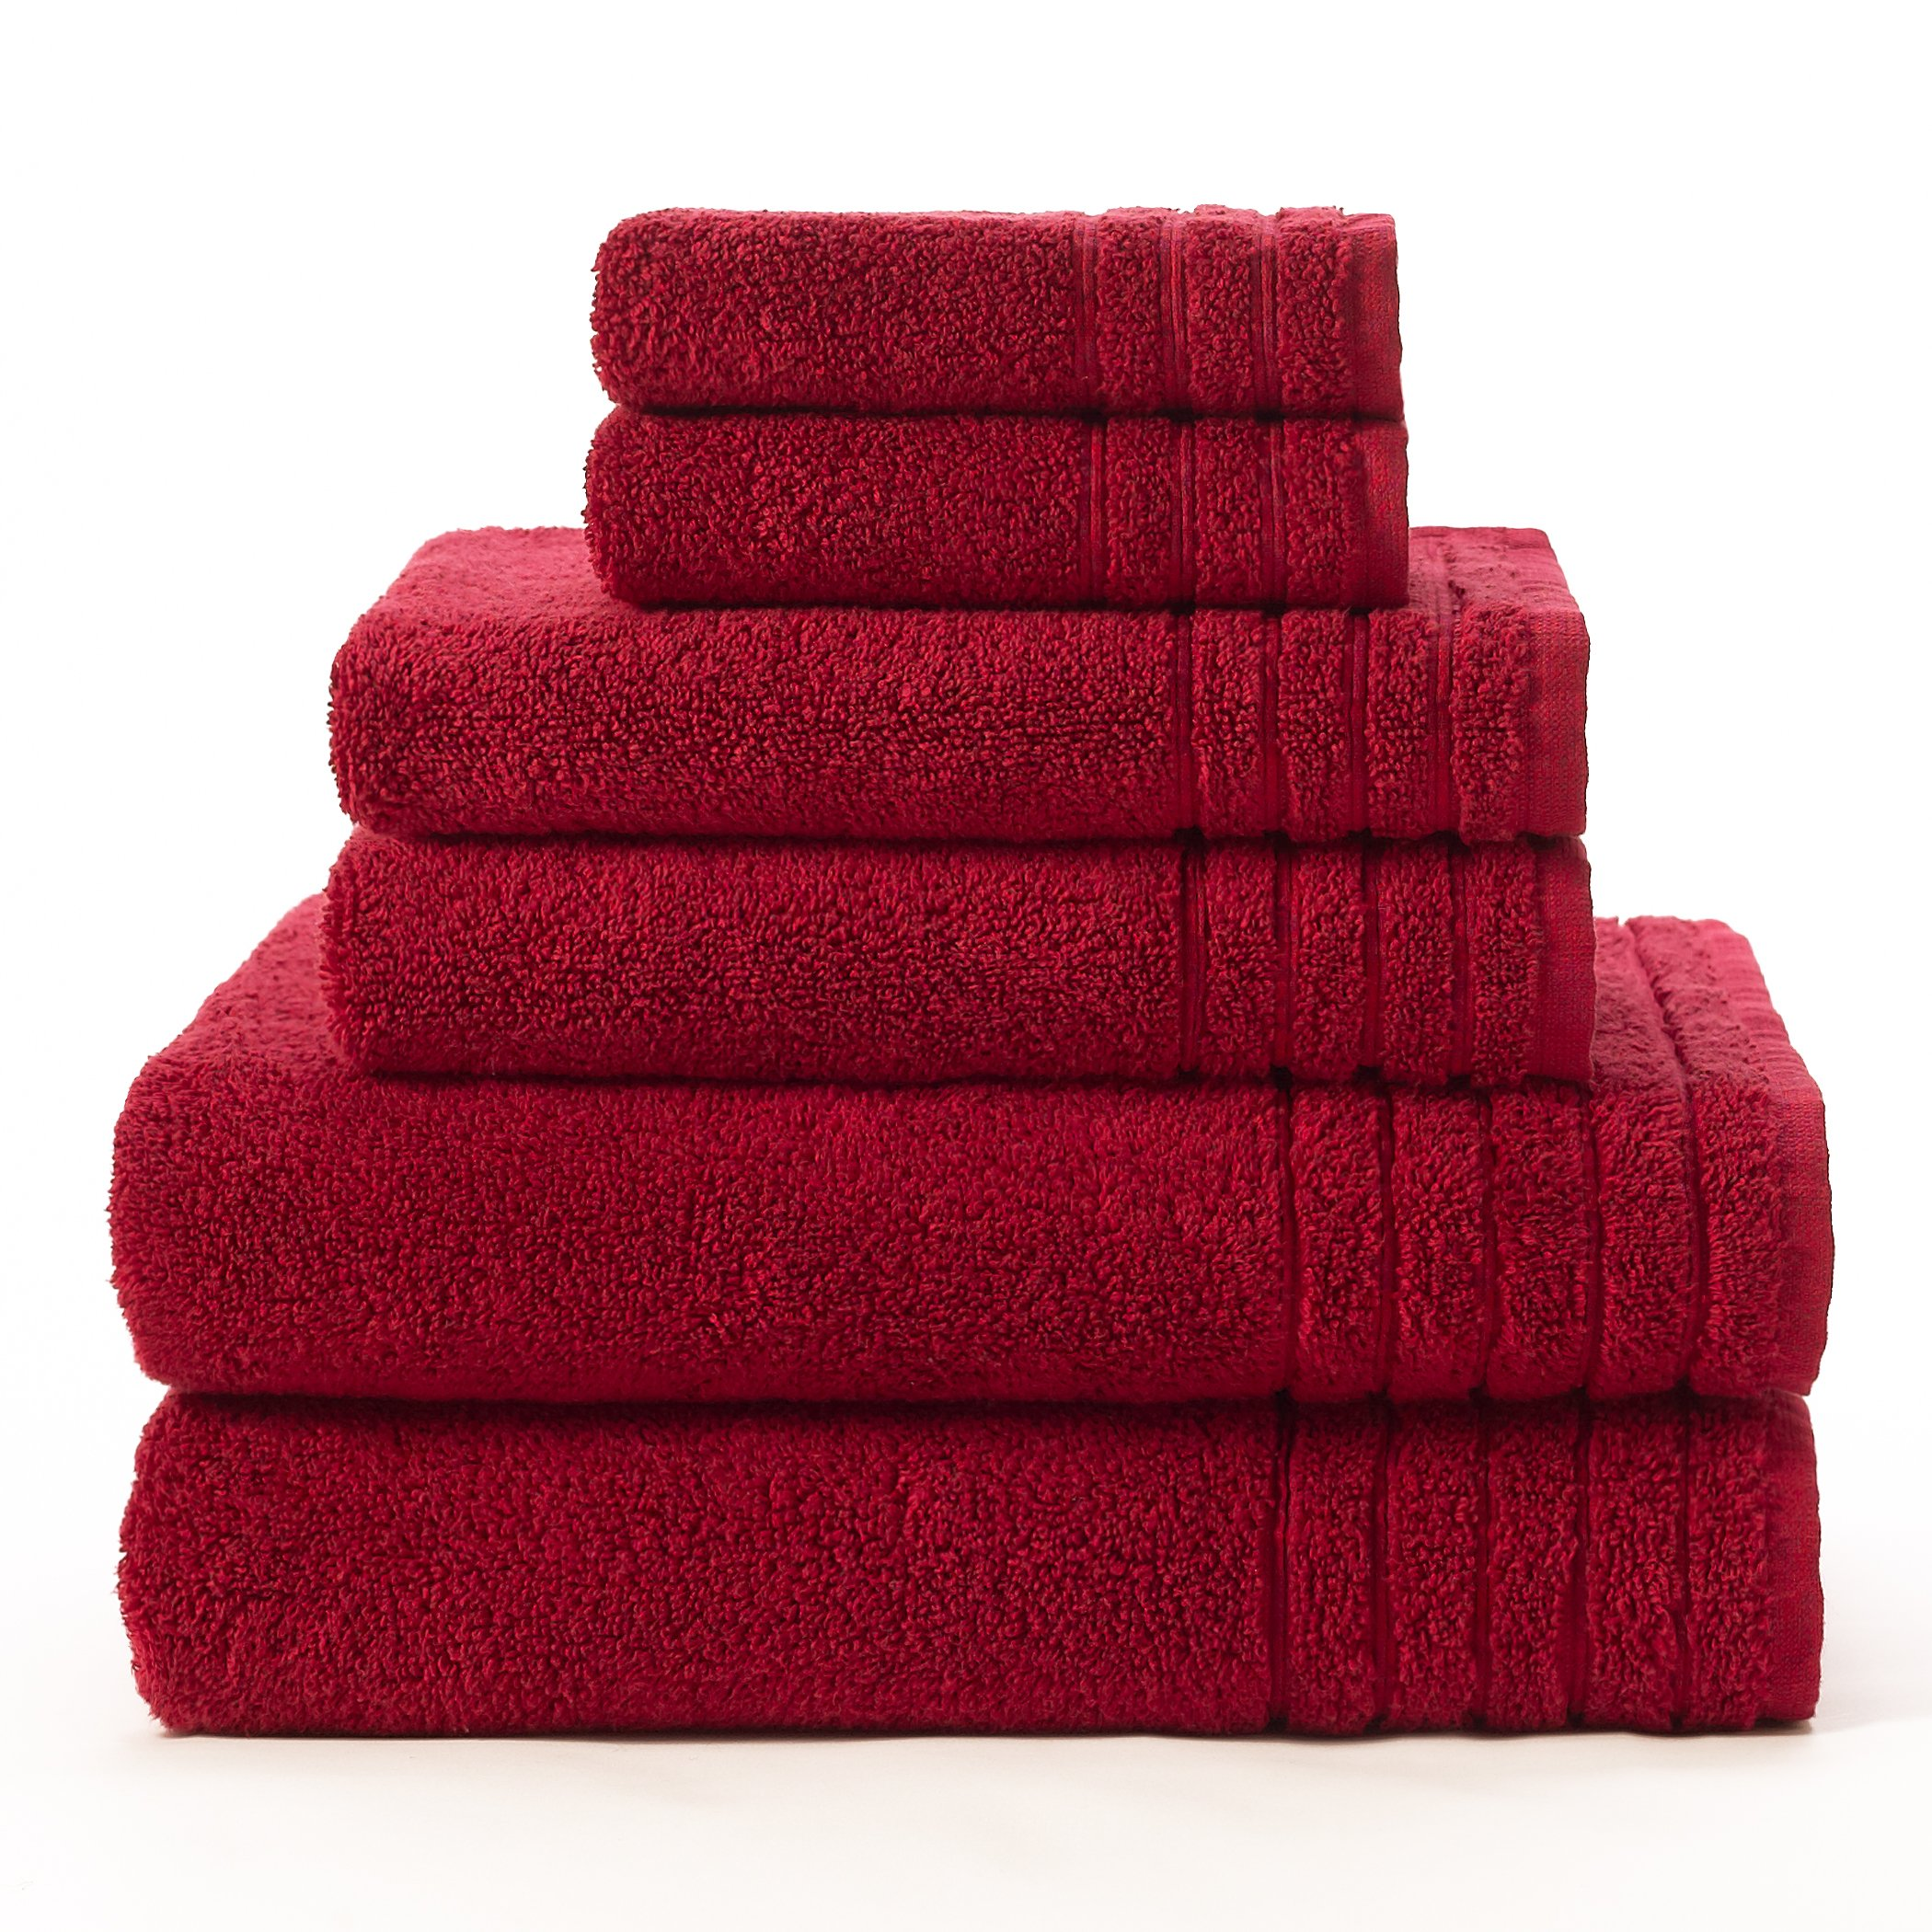 Cotton Craft - Super Zero Twist 6 Piece Towel Set - Cassis - 7 Star Hotel Collection Beyond Luxury Softer Than A Cloud, Contains 2 Oversized Bath Towels 30x54, 2 Hand Towels 16x30, 2 Wash Cloths 13x13